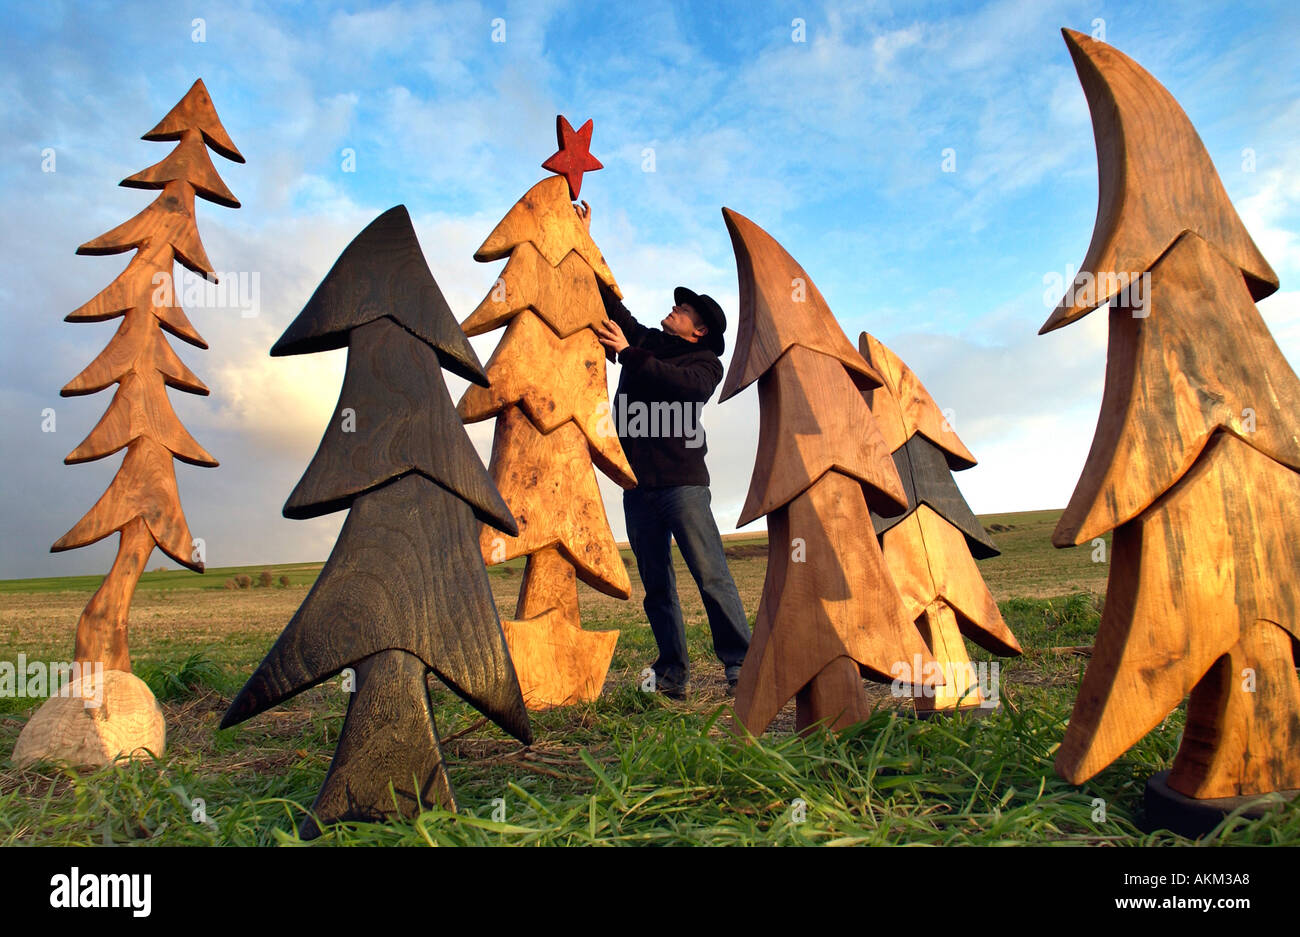 Artist johnny woodford with his surreal wooden christmas trees